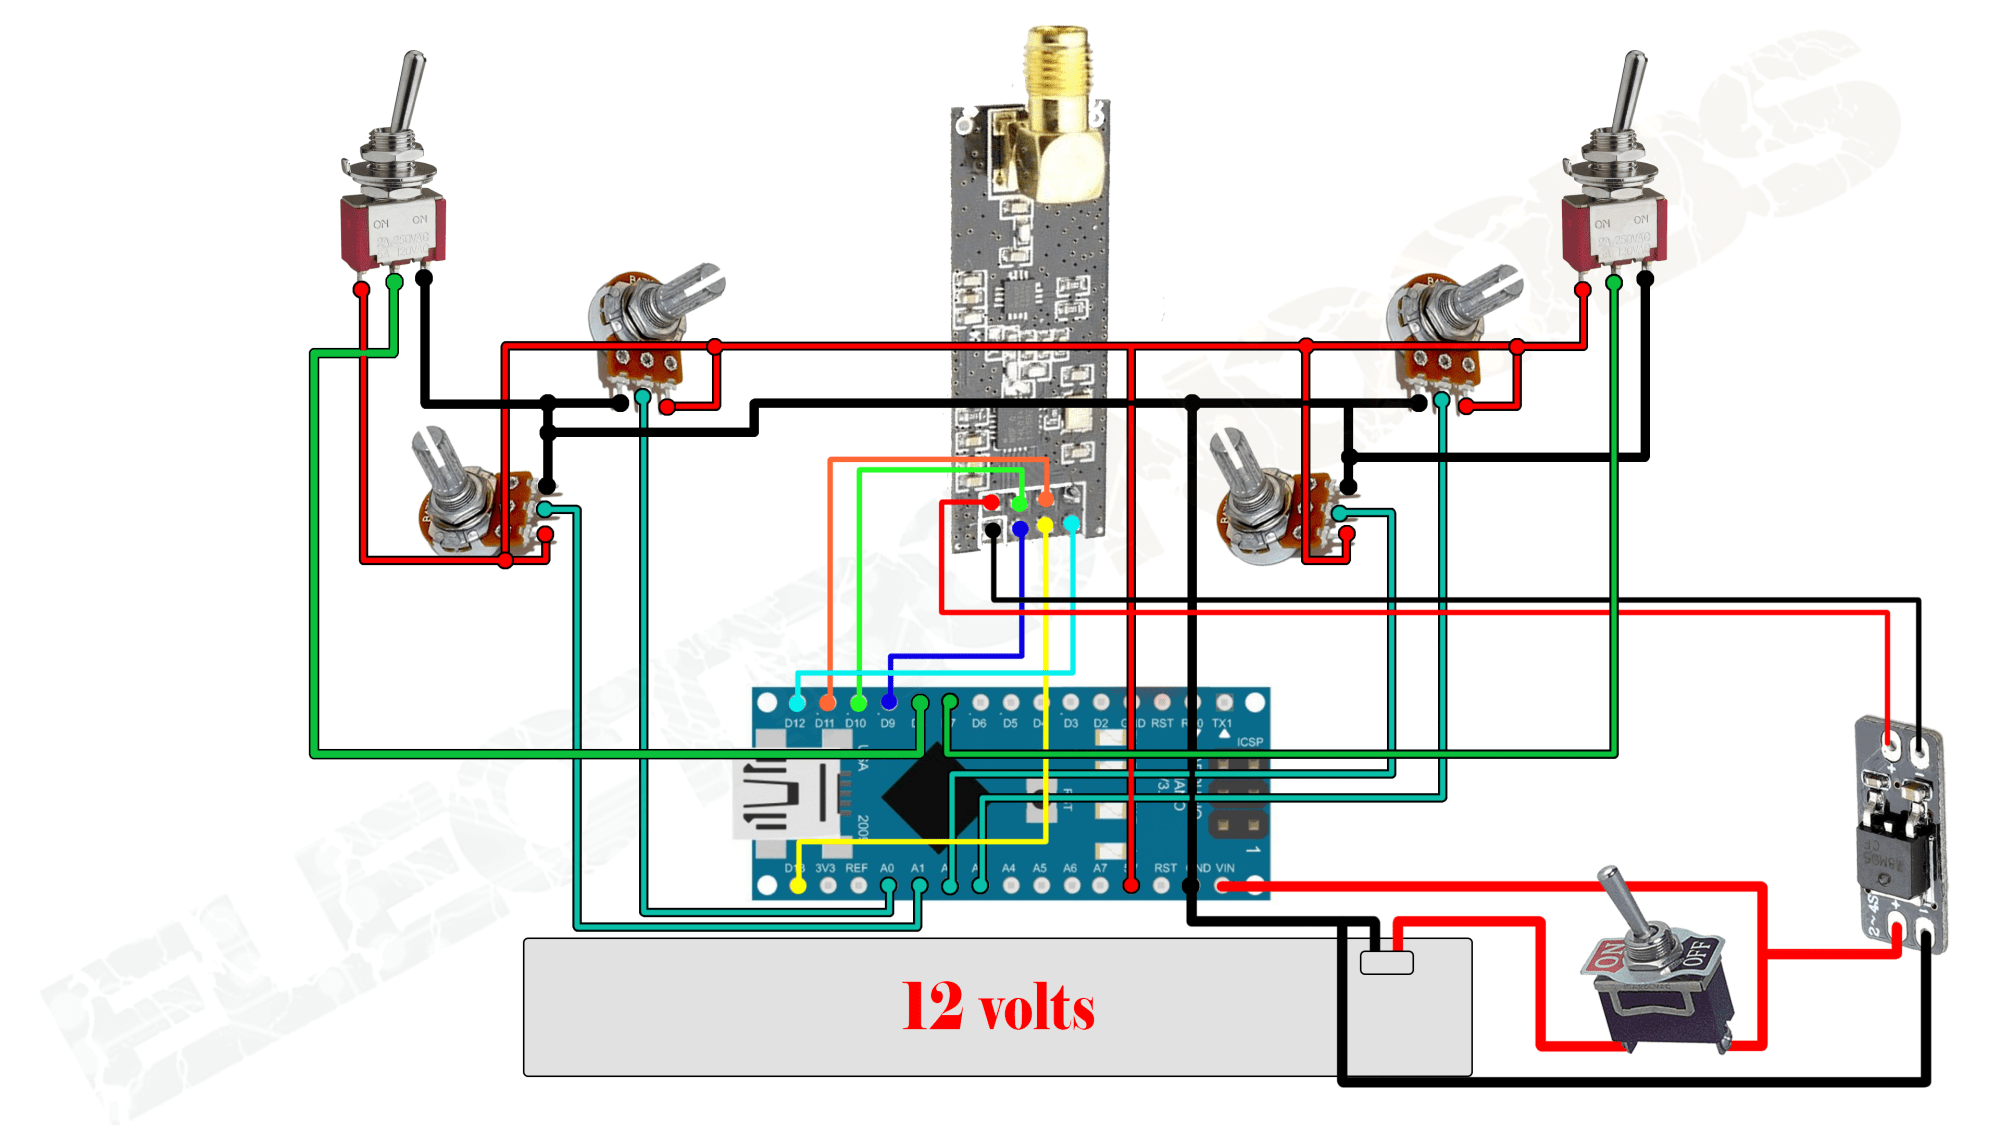 hight resolution of rc transmitter diagram schema wiring diagrams 10 rc controllers nrf24 radio controller arduino transmitter radio transmitter